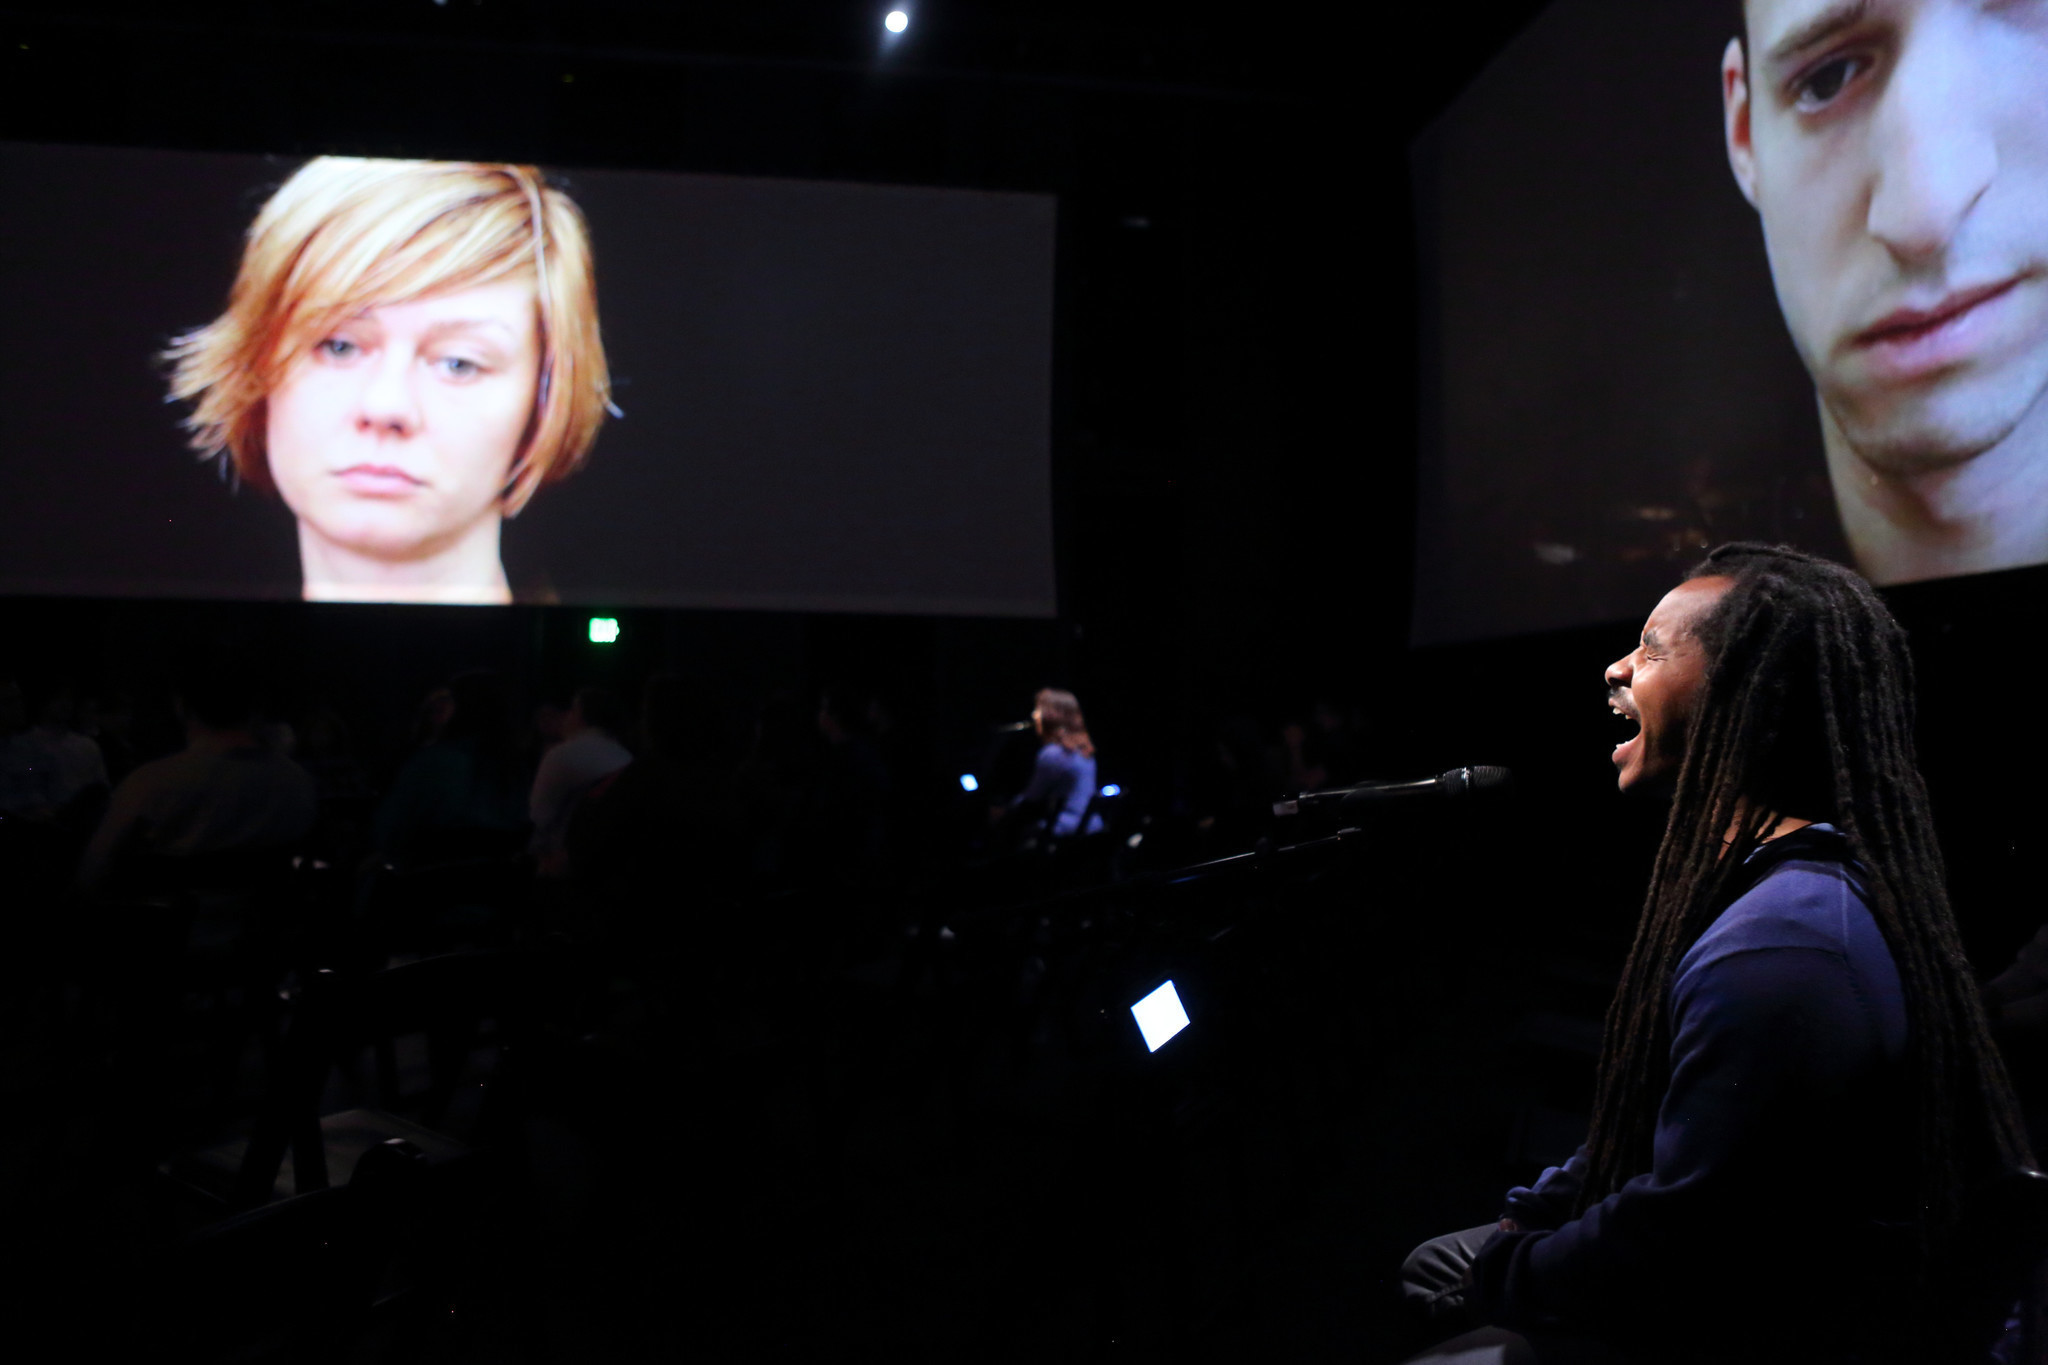 WikiLeaks at the Opera: What Chelsea Manning-inspired music says about government secrets